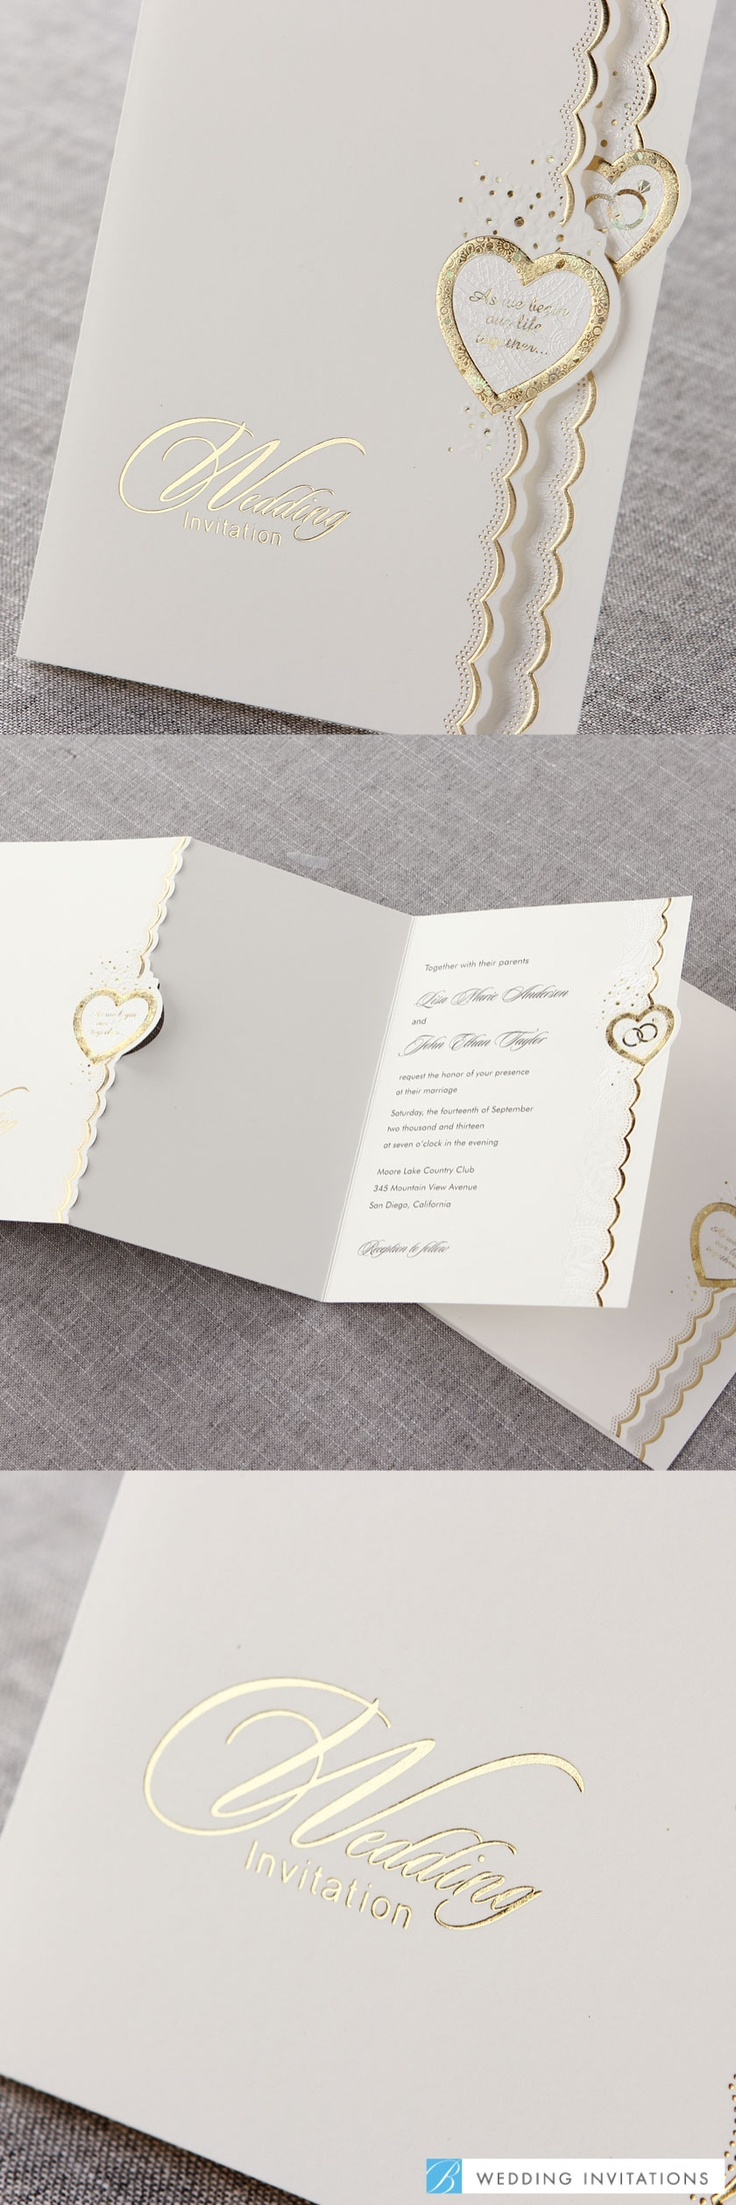 18 Best Indie Wedding Invitations Images On Pinterest Invitation